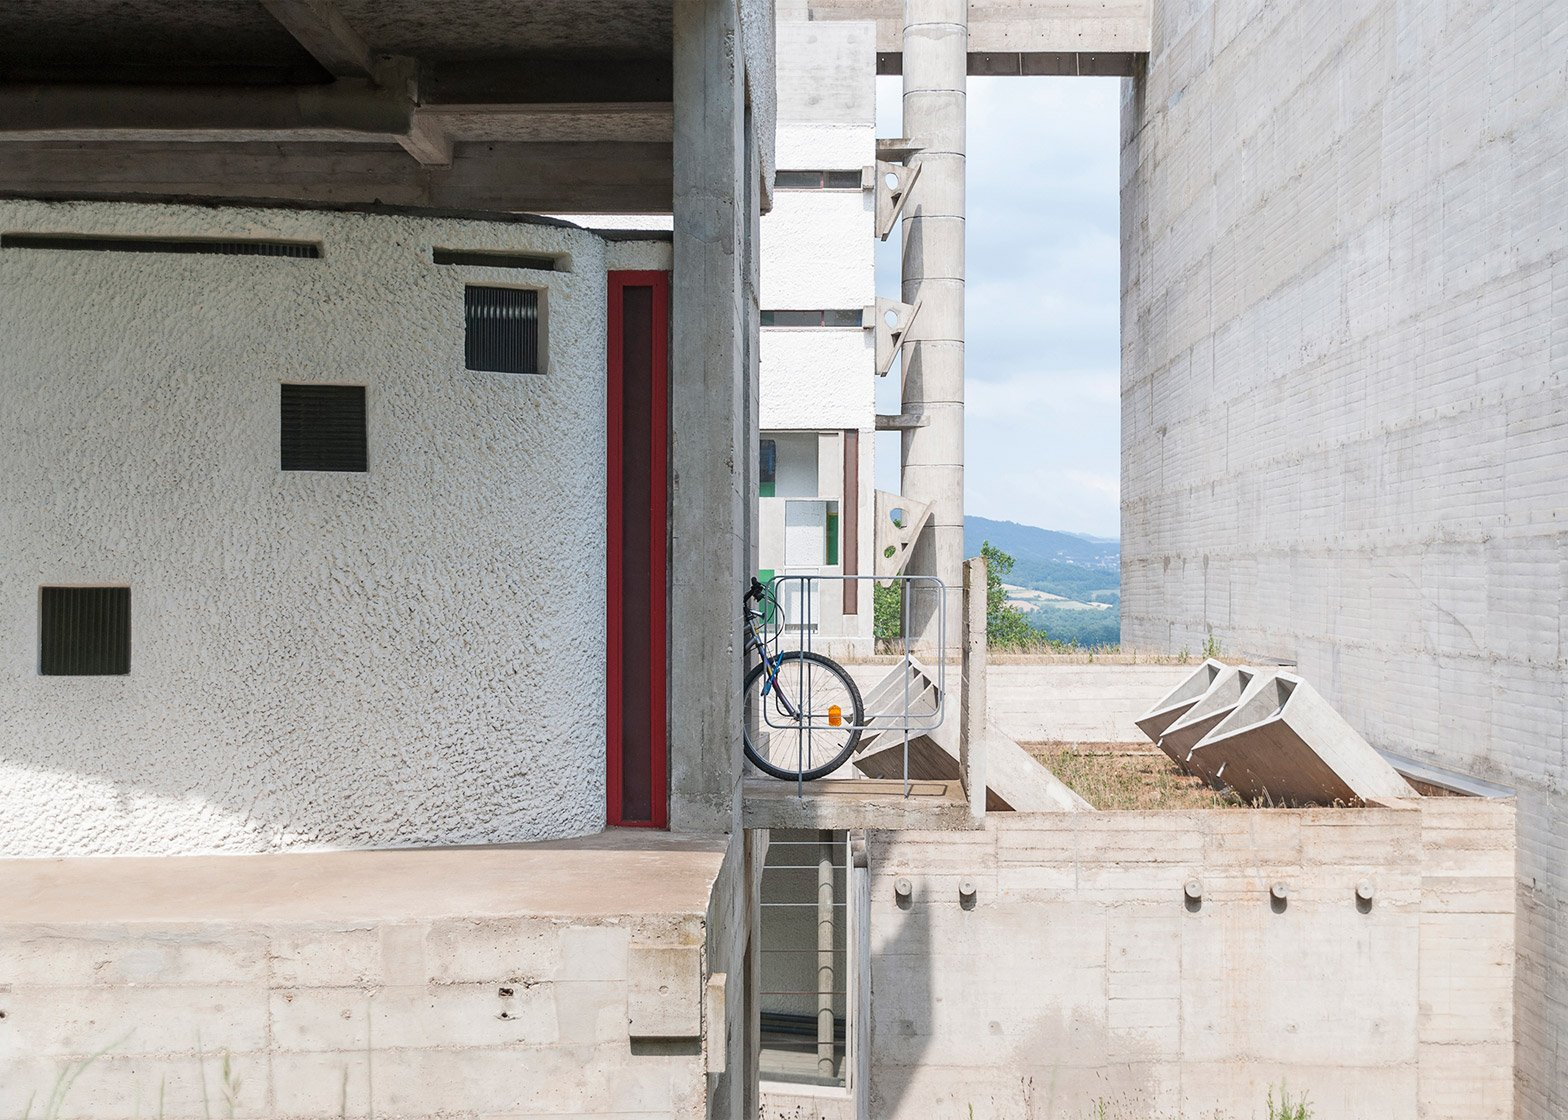 Le Corbusier's La Tourette is a UNESCO world heritage site